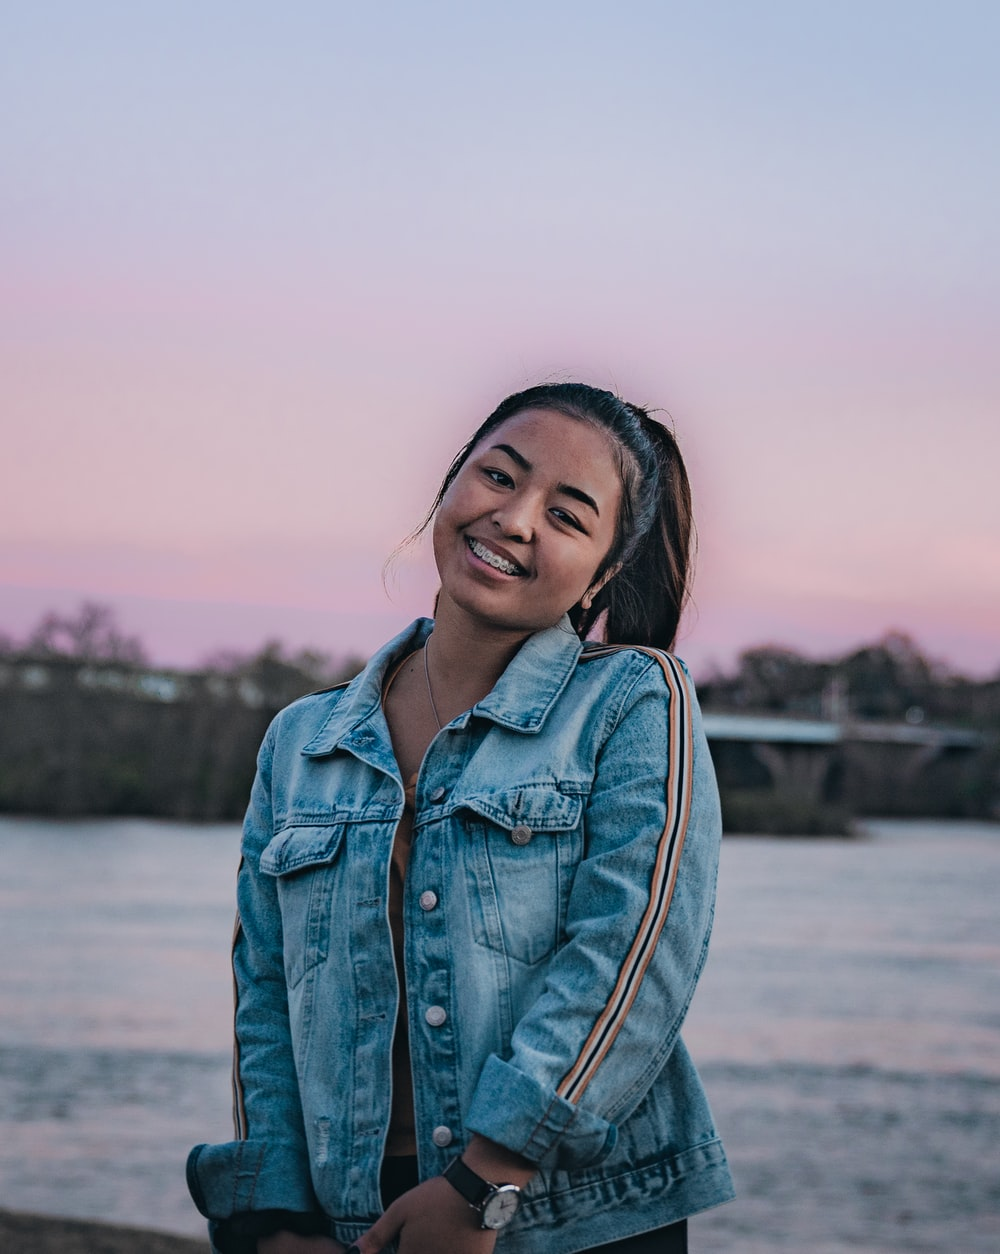 smiling woman in blue denim jacket by body of water